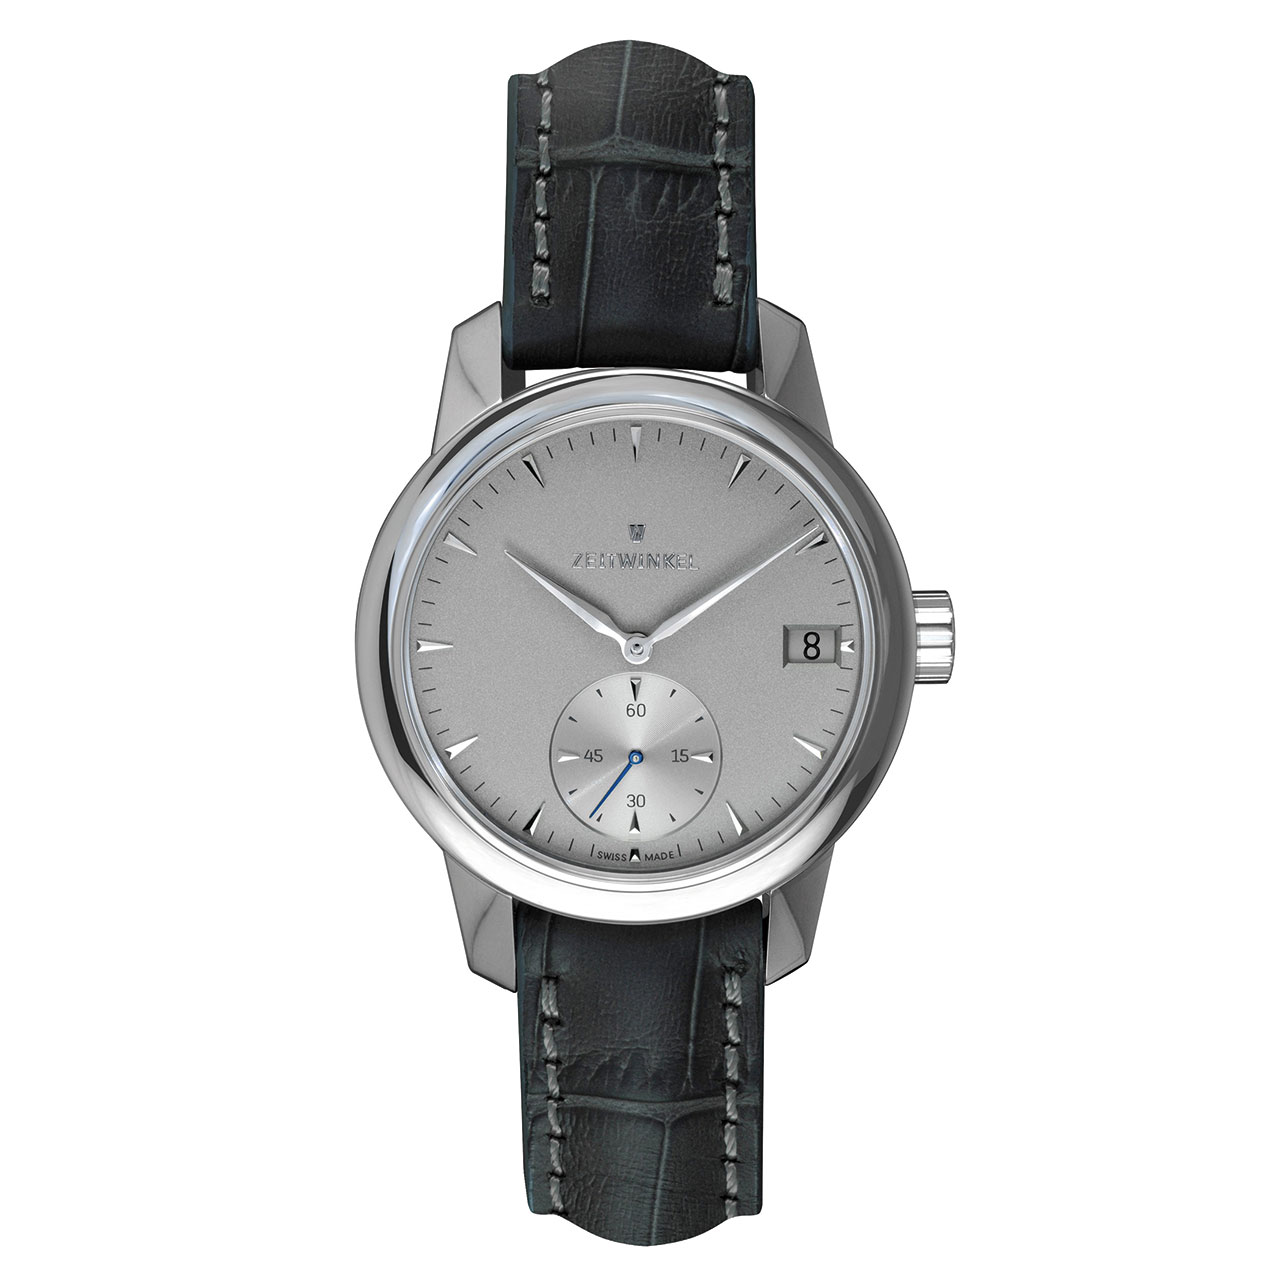 Zeitwinkel 188° Automatic Watch